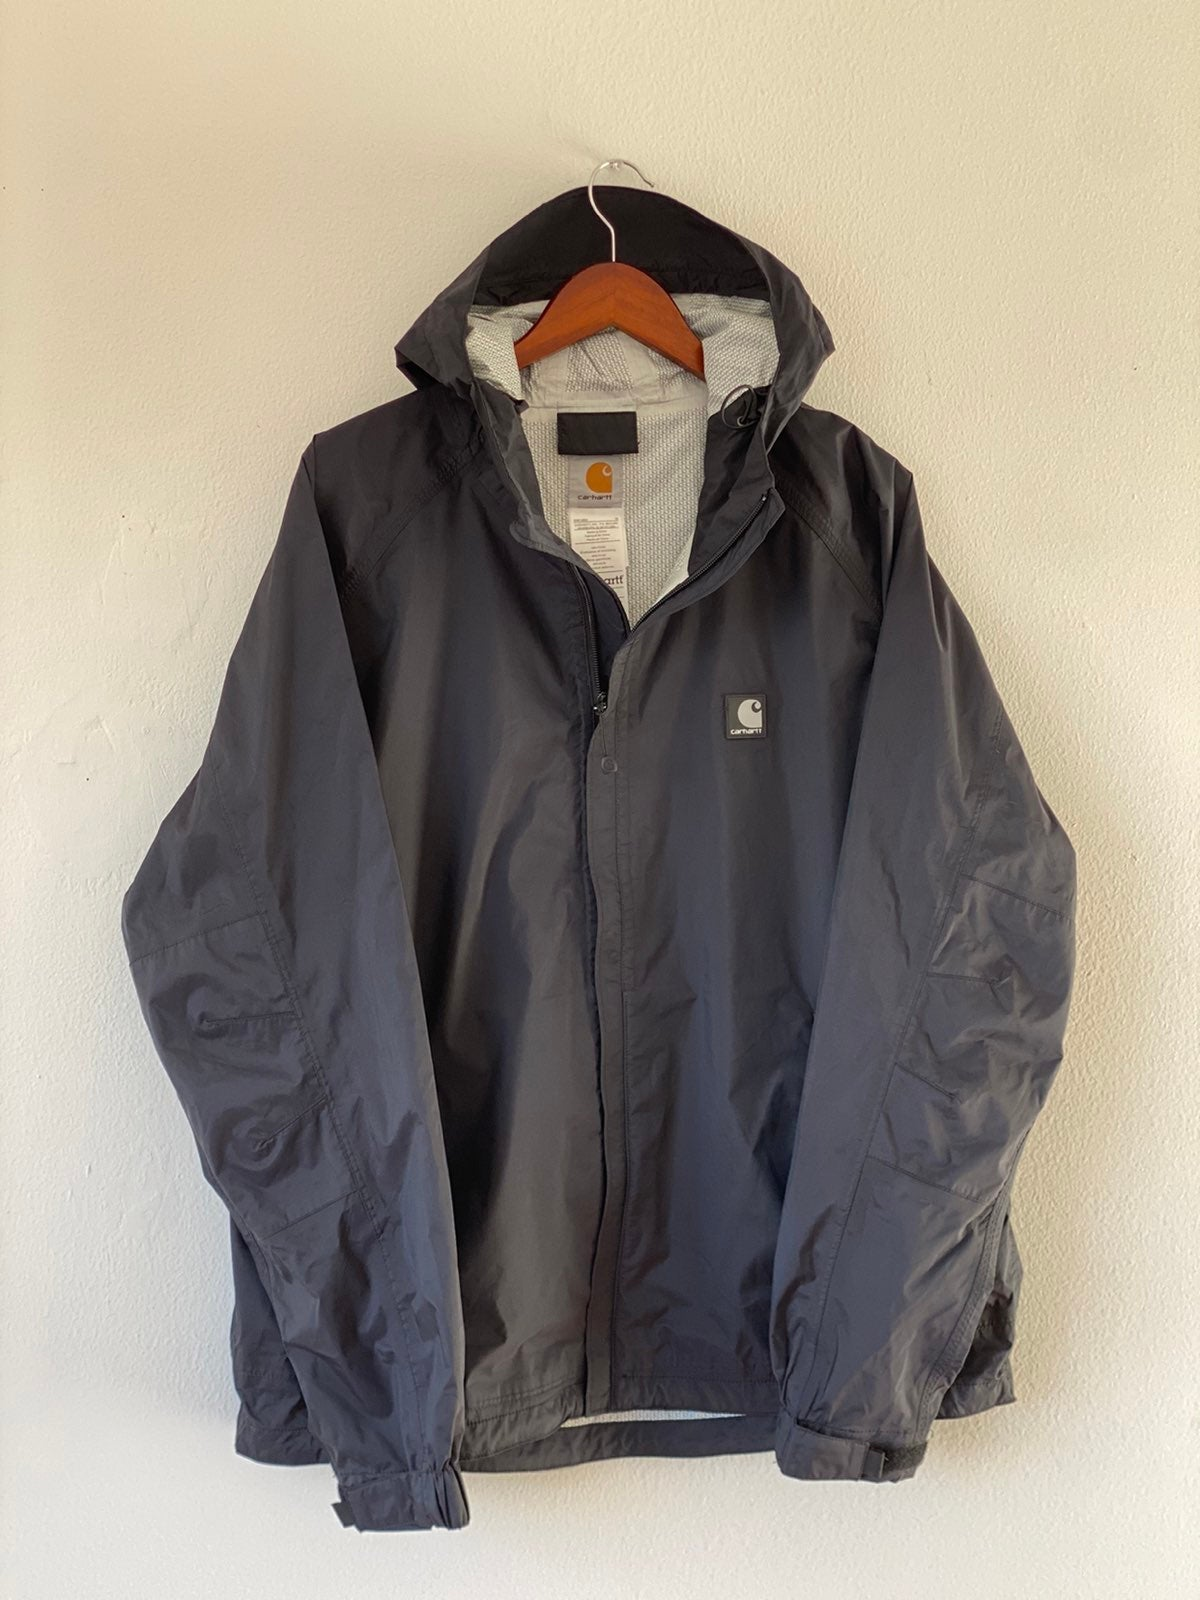 Carhartt Windbreaker Jacket Sz L